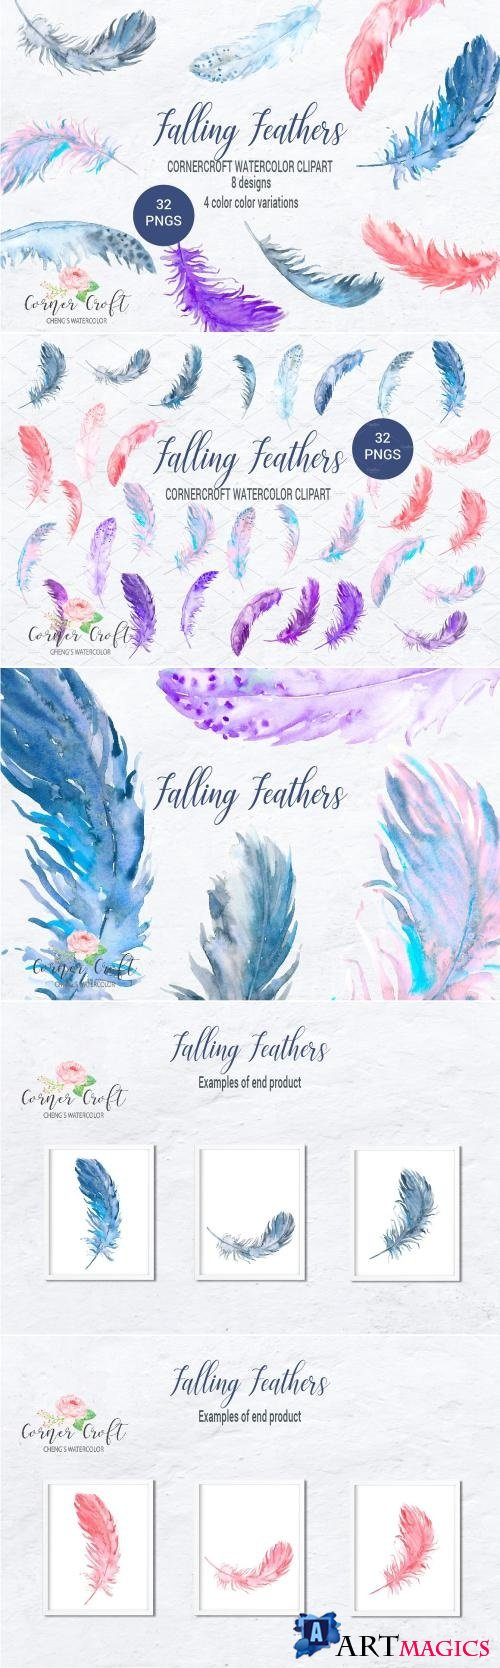 Watercolor Clipart Falling Feathers - 2178814